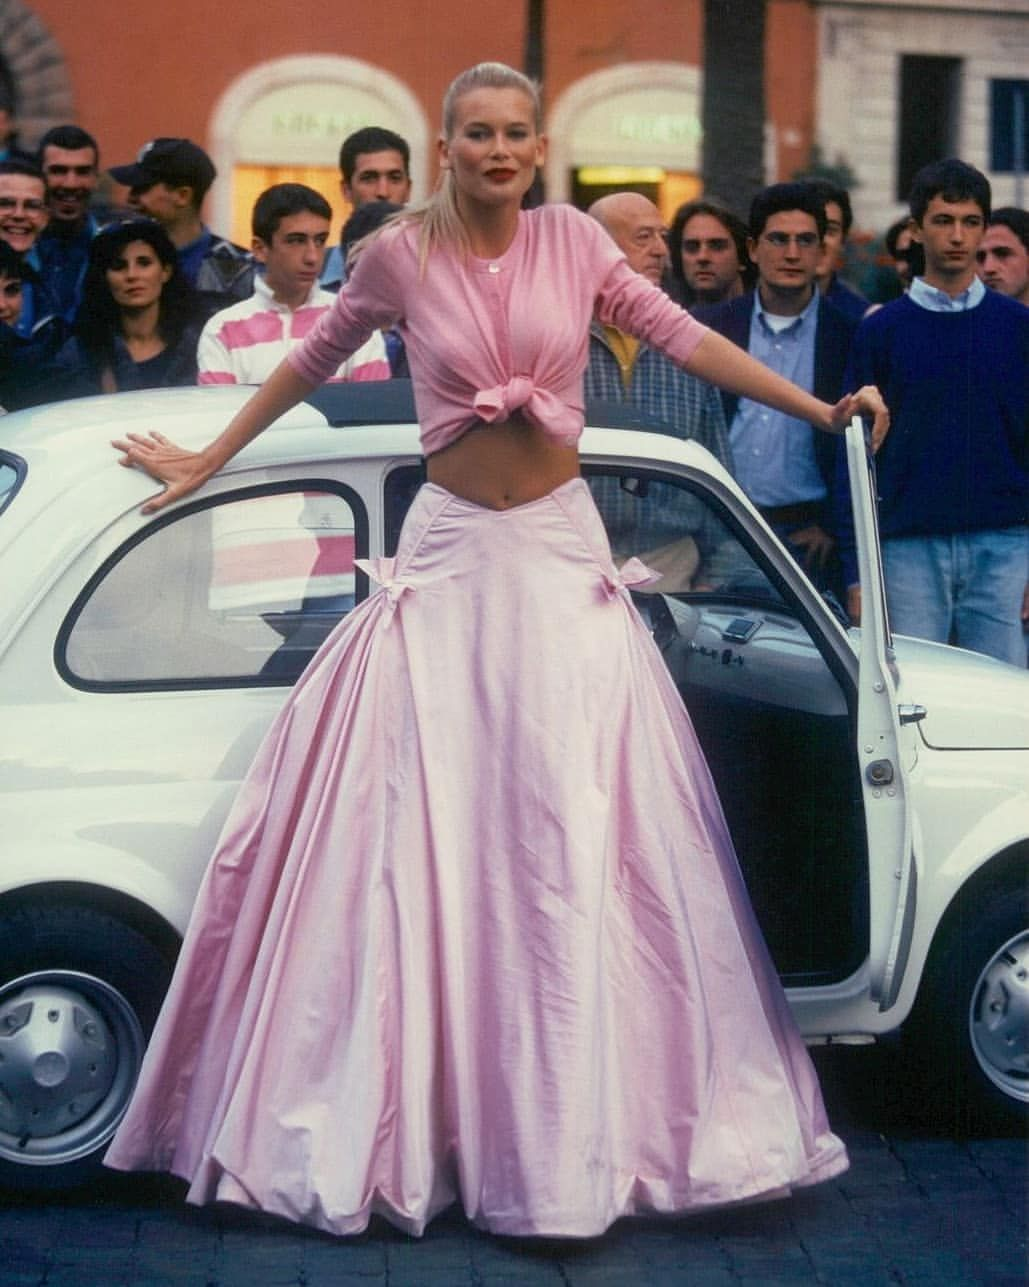 Claudia Schiffer Behind The Scenes Shooting For Vogue In Rome 1994 Fashion 90s Fashion Outfits Outfit Inspirations 90s